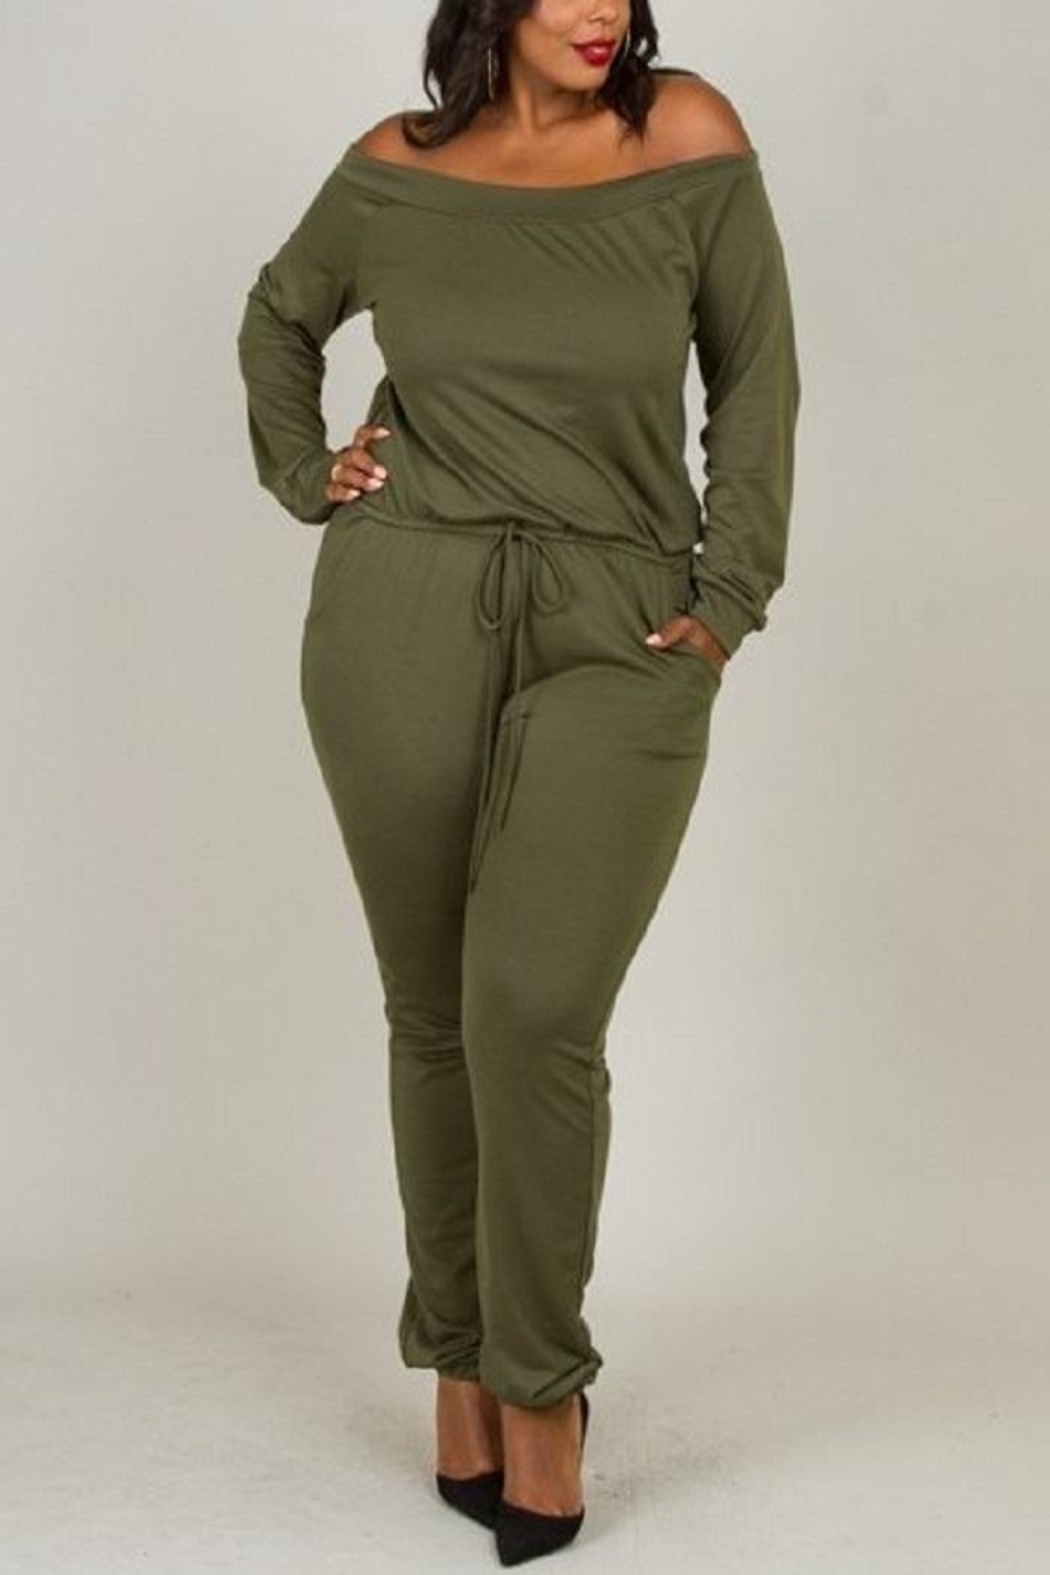 9bffbfc4370 5th Culture Olive This Jumpsuit from Georgia by Posh Clothing ...